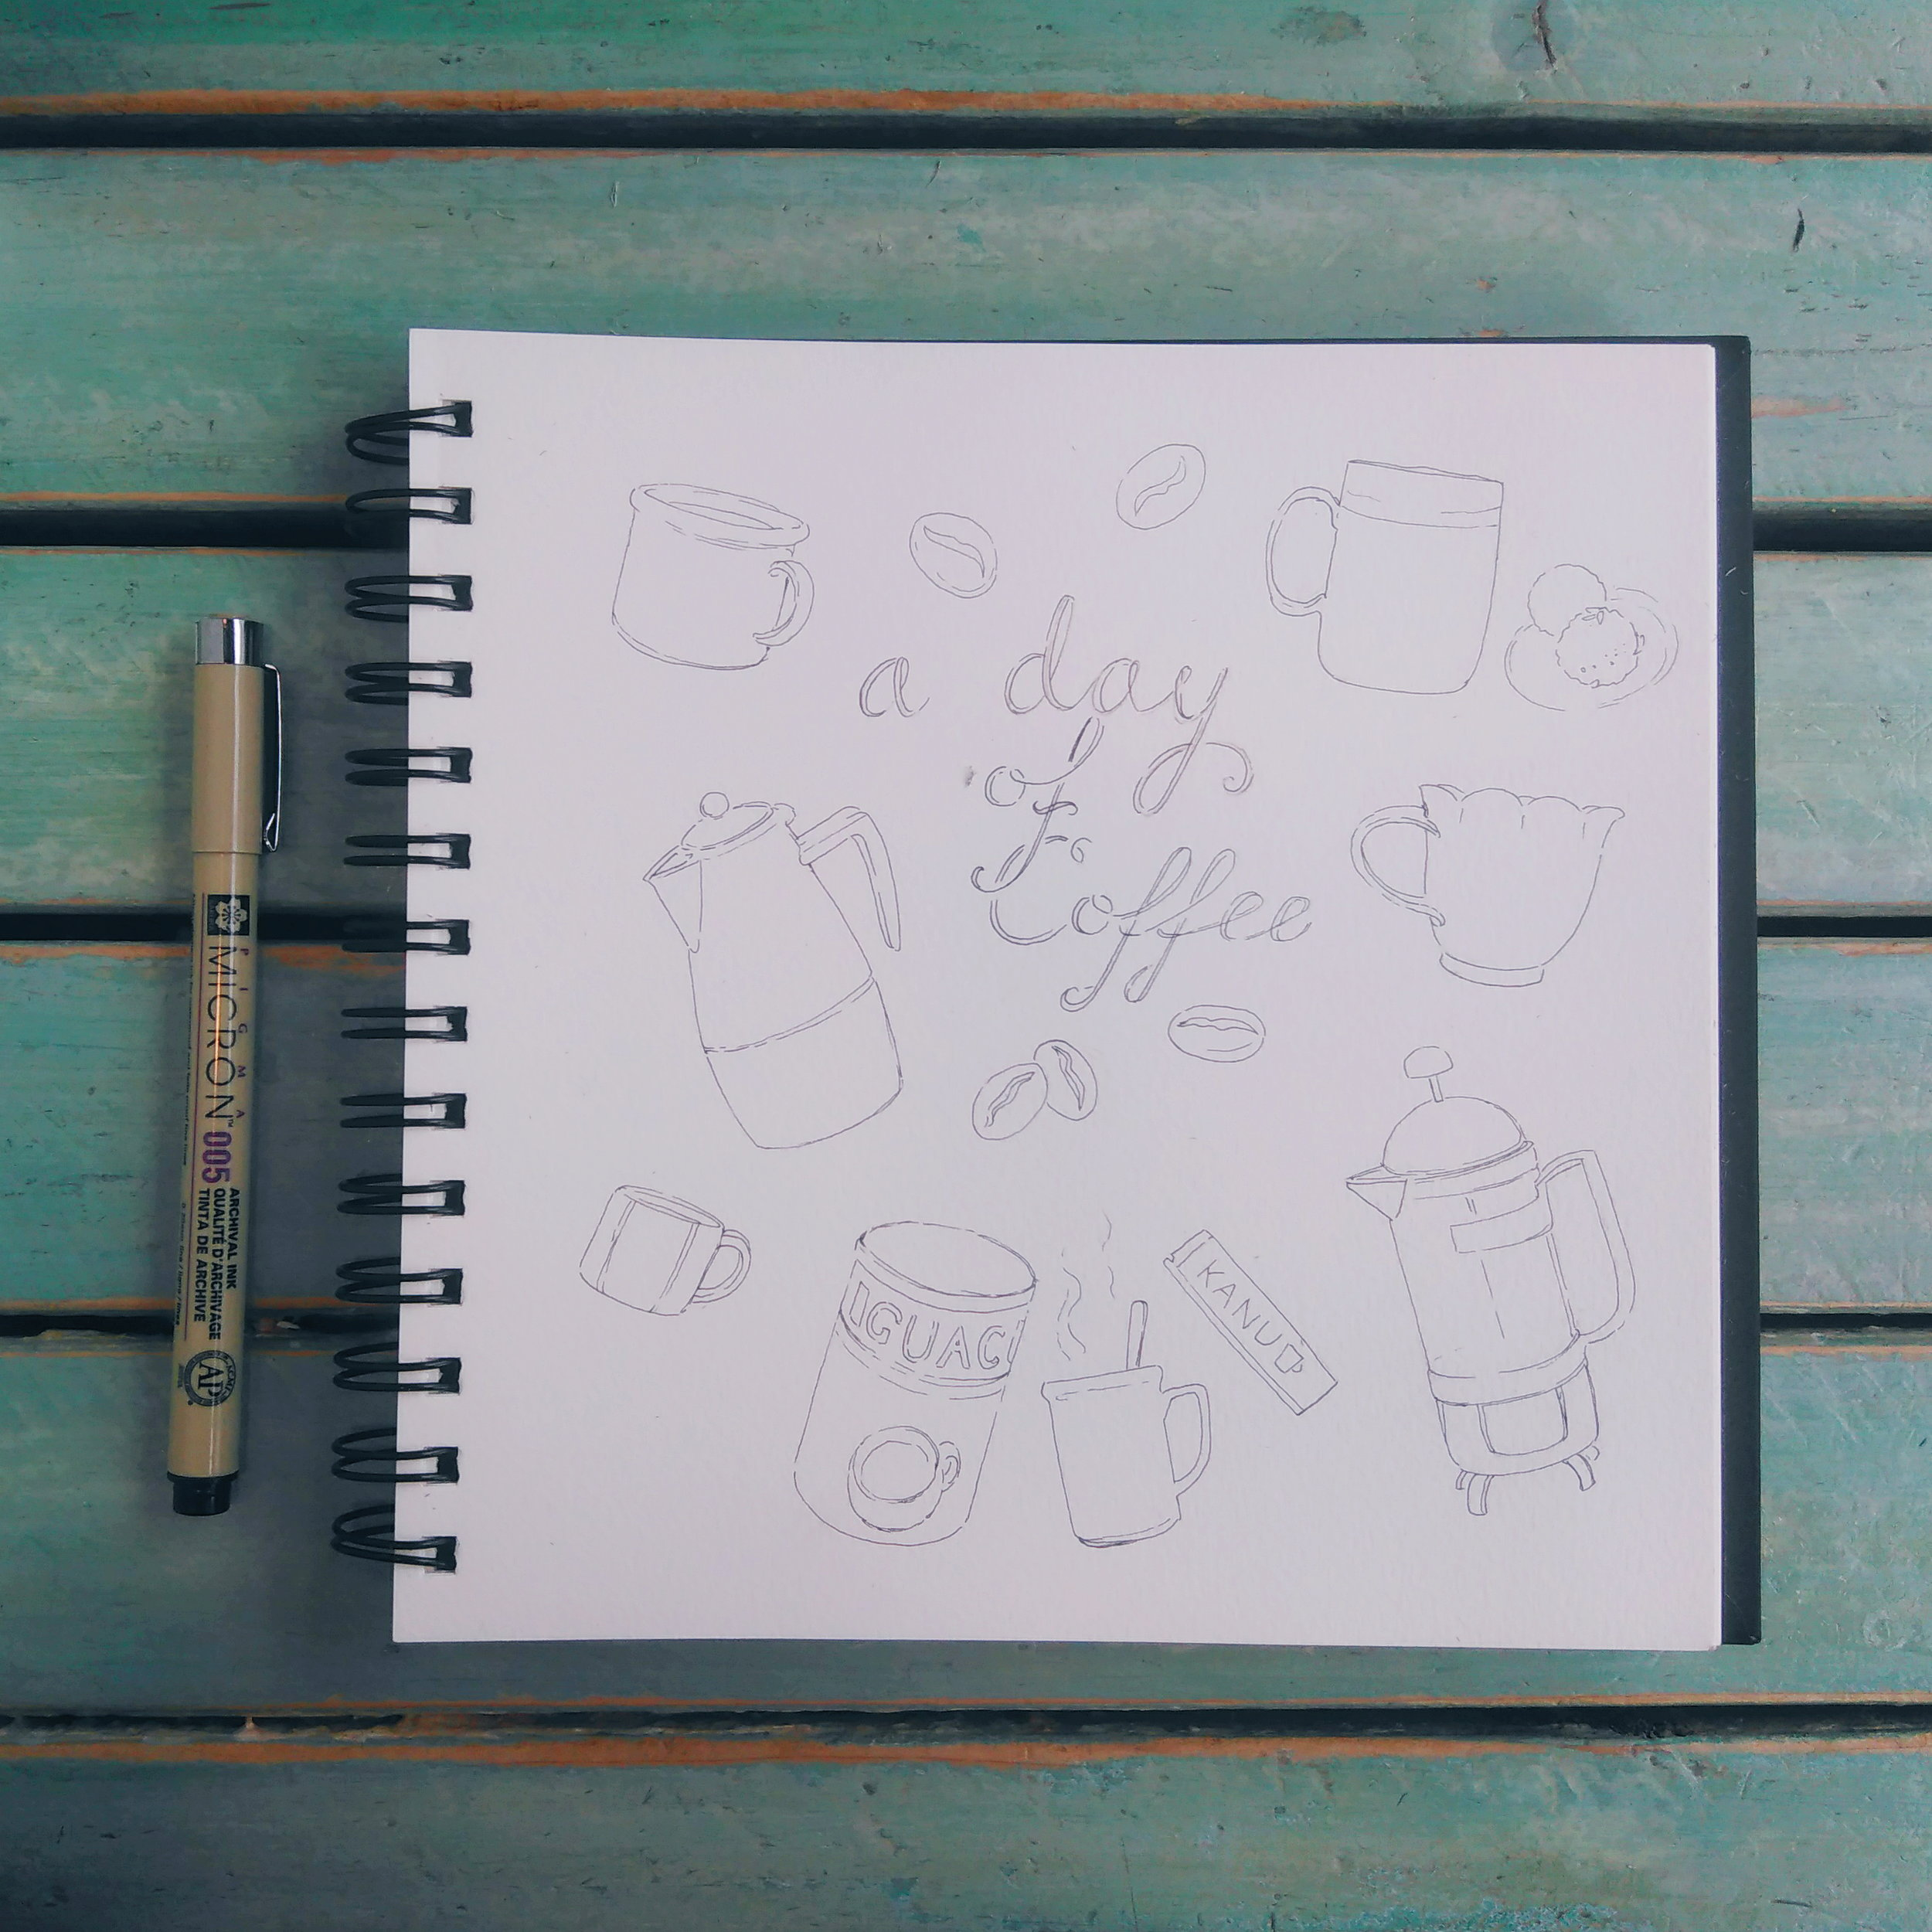 Coffee in my sketchbook. I'm trying to cut back on caffeine, but in the end, I always end up with at least three cups per day. Oh well.